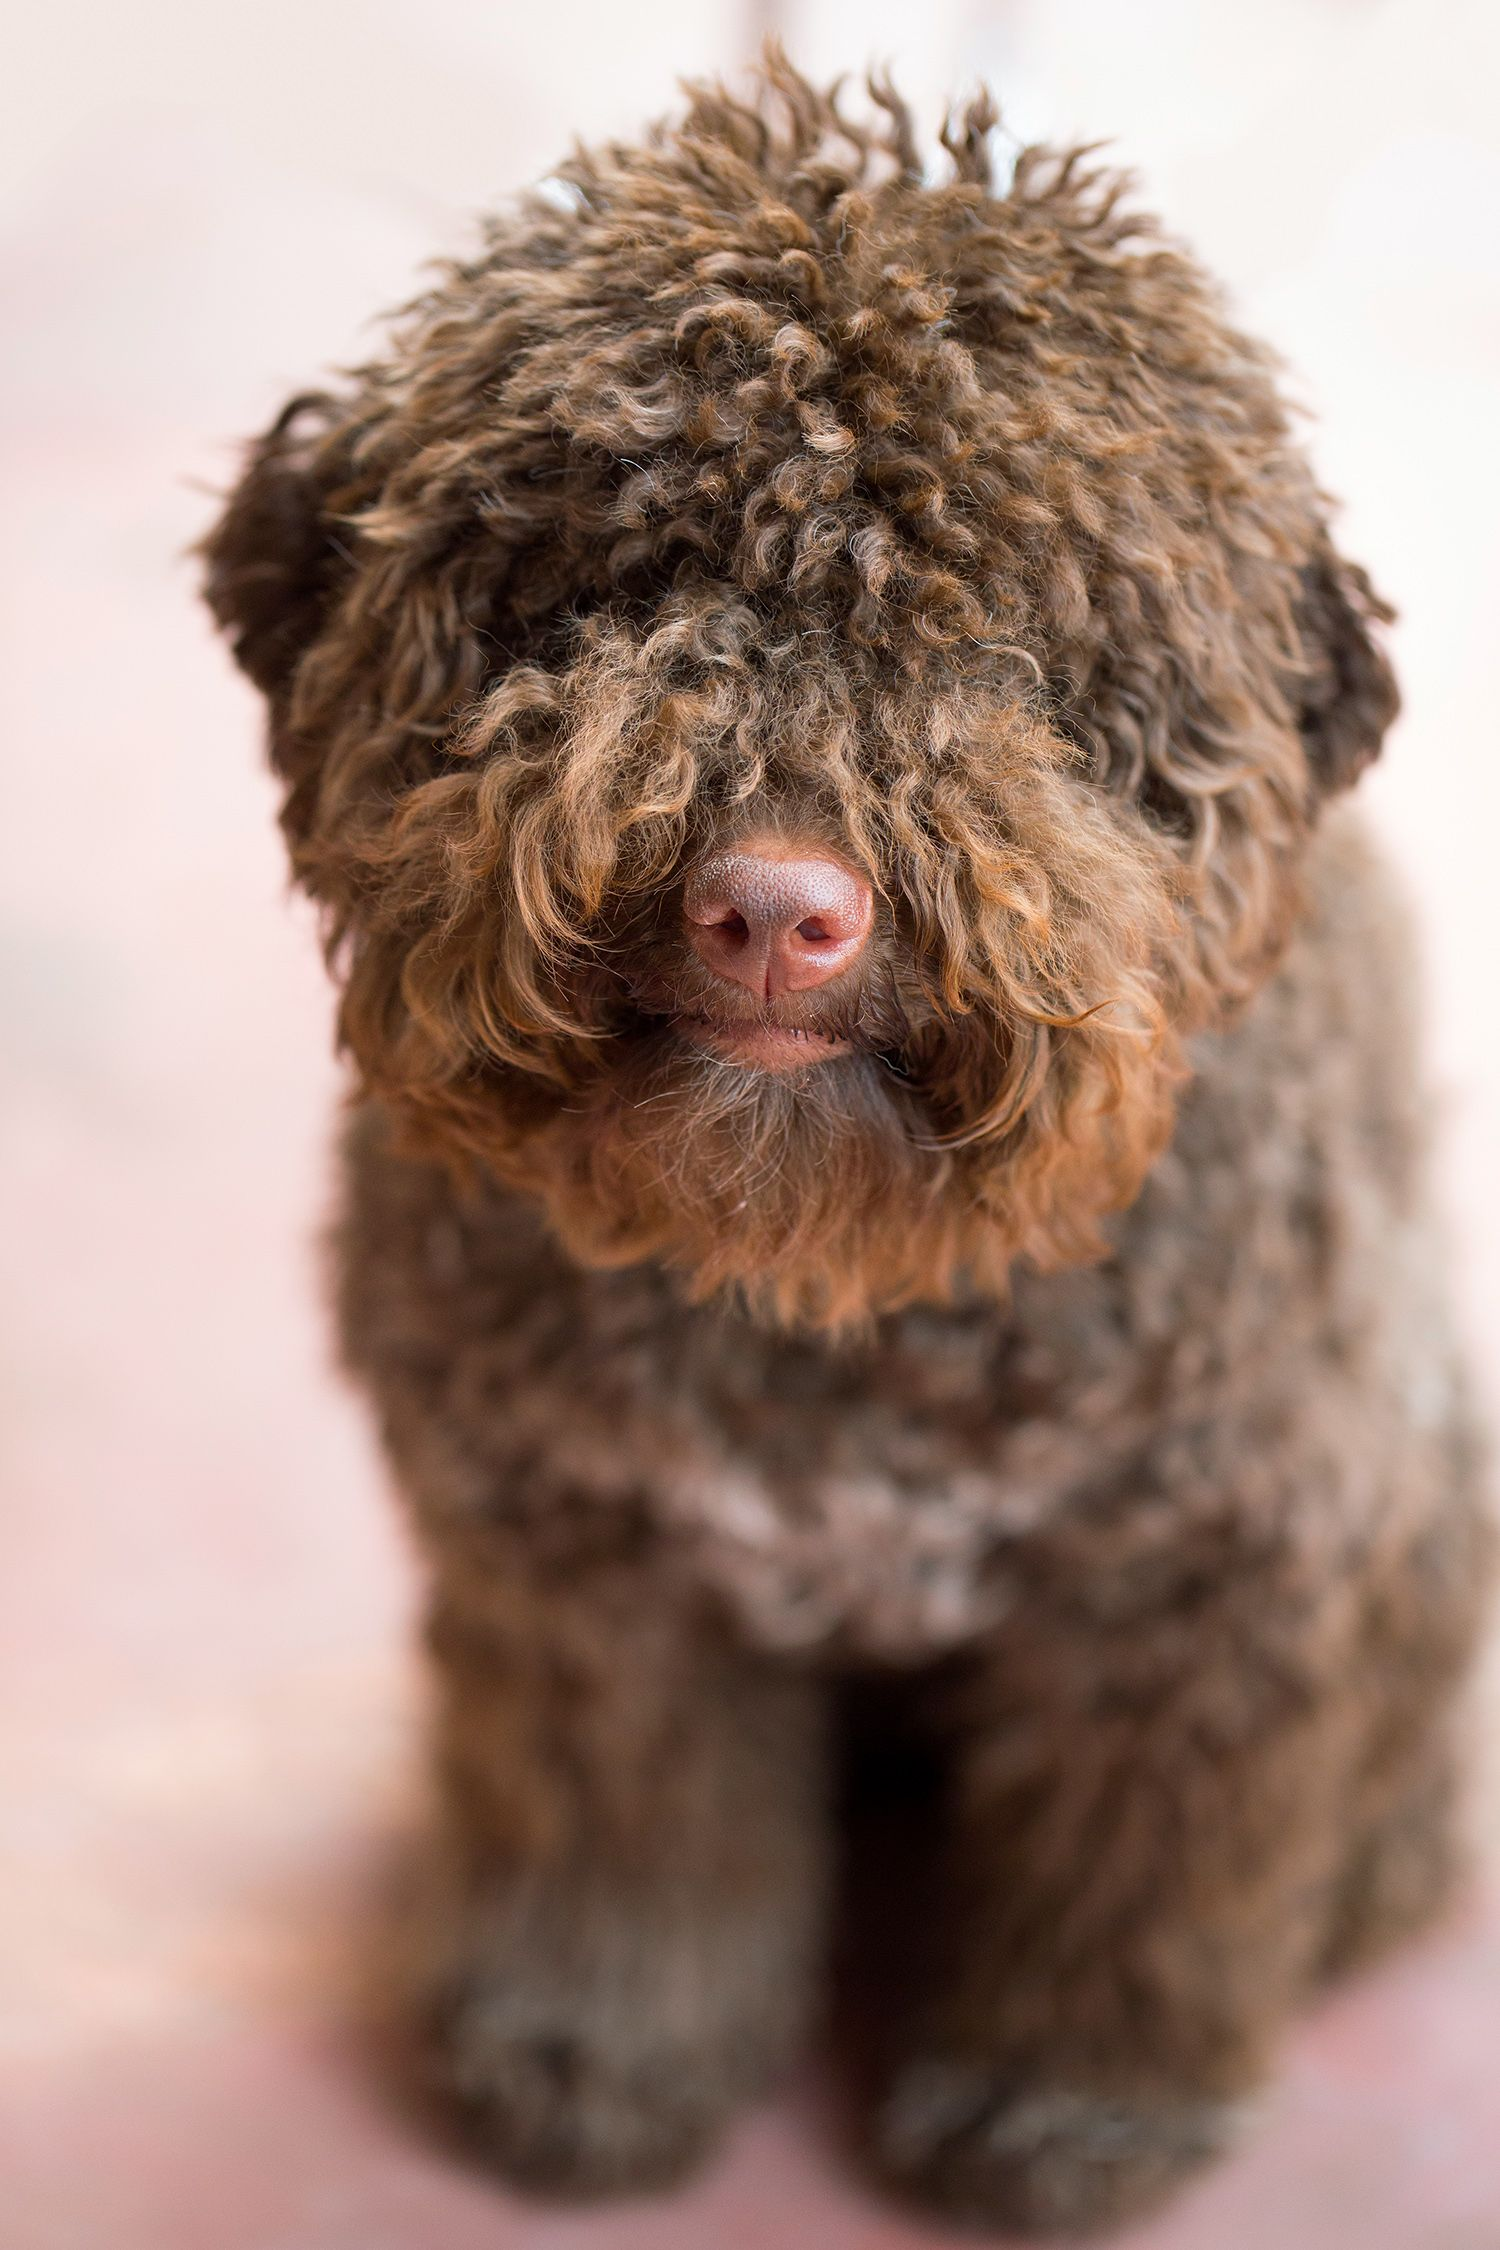 10 Overlooked Dog Breeds That Make For Great Family Pets Water Dog Breeds Family Dogs Breeds Dog Breeds